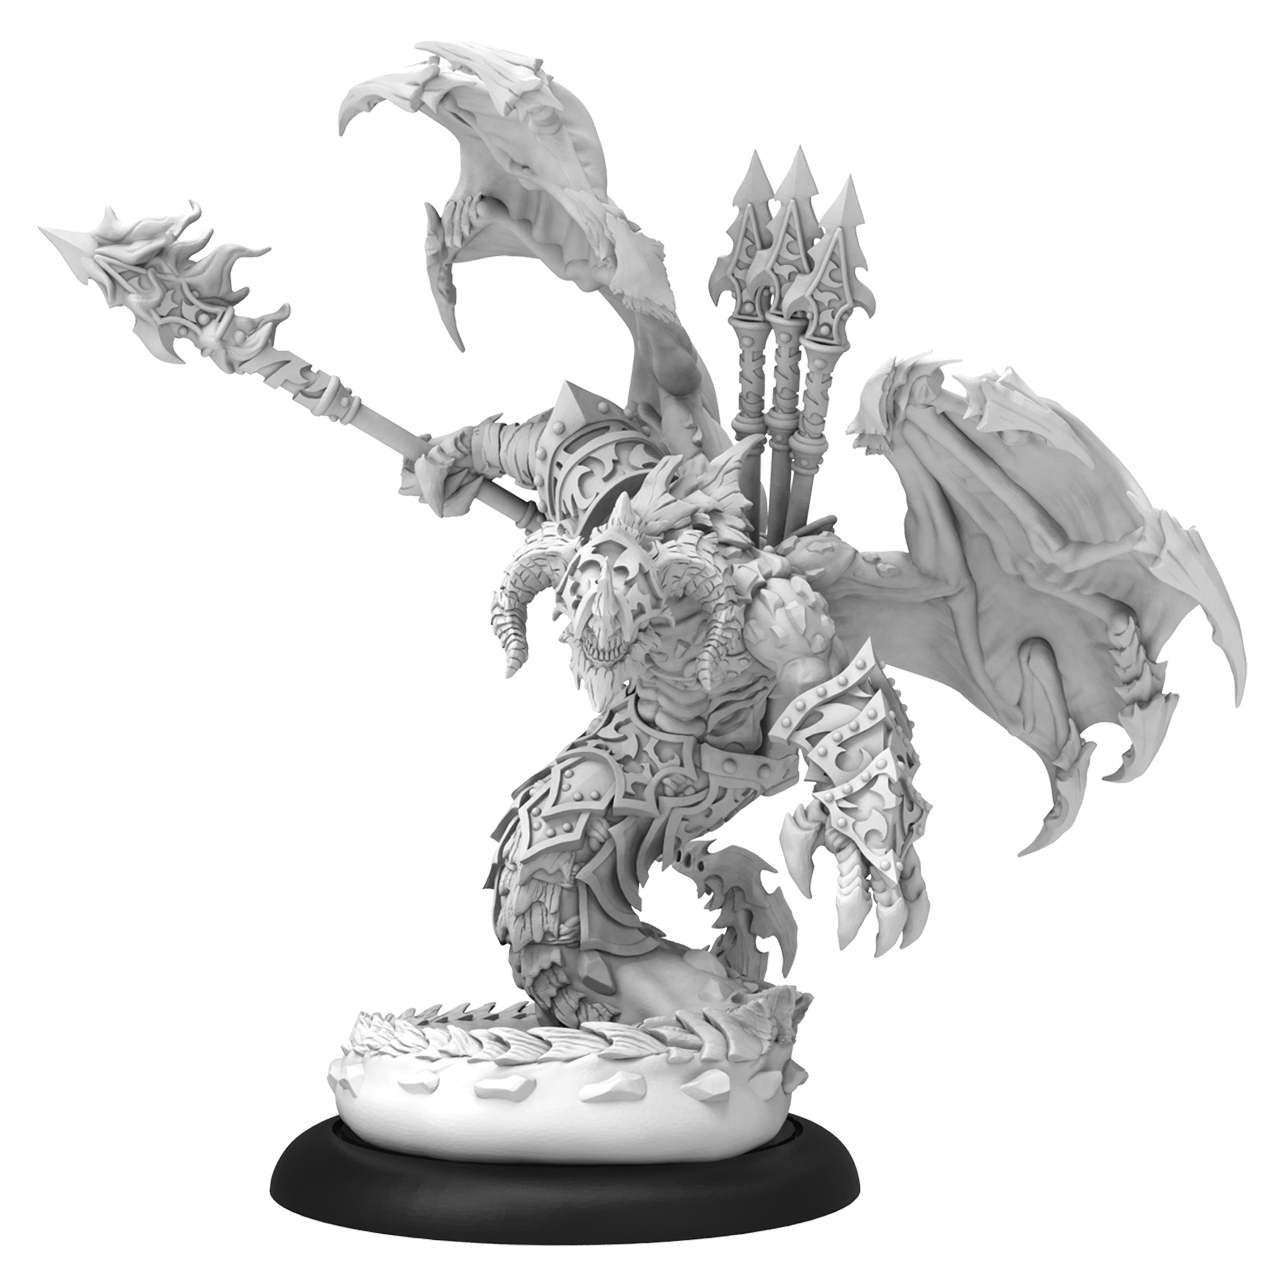 Hordes: (Legion Of Everblight) Azrael - Legion Heavy Nephilim Character Warbeast (Metal/Resin)